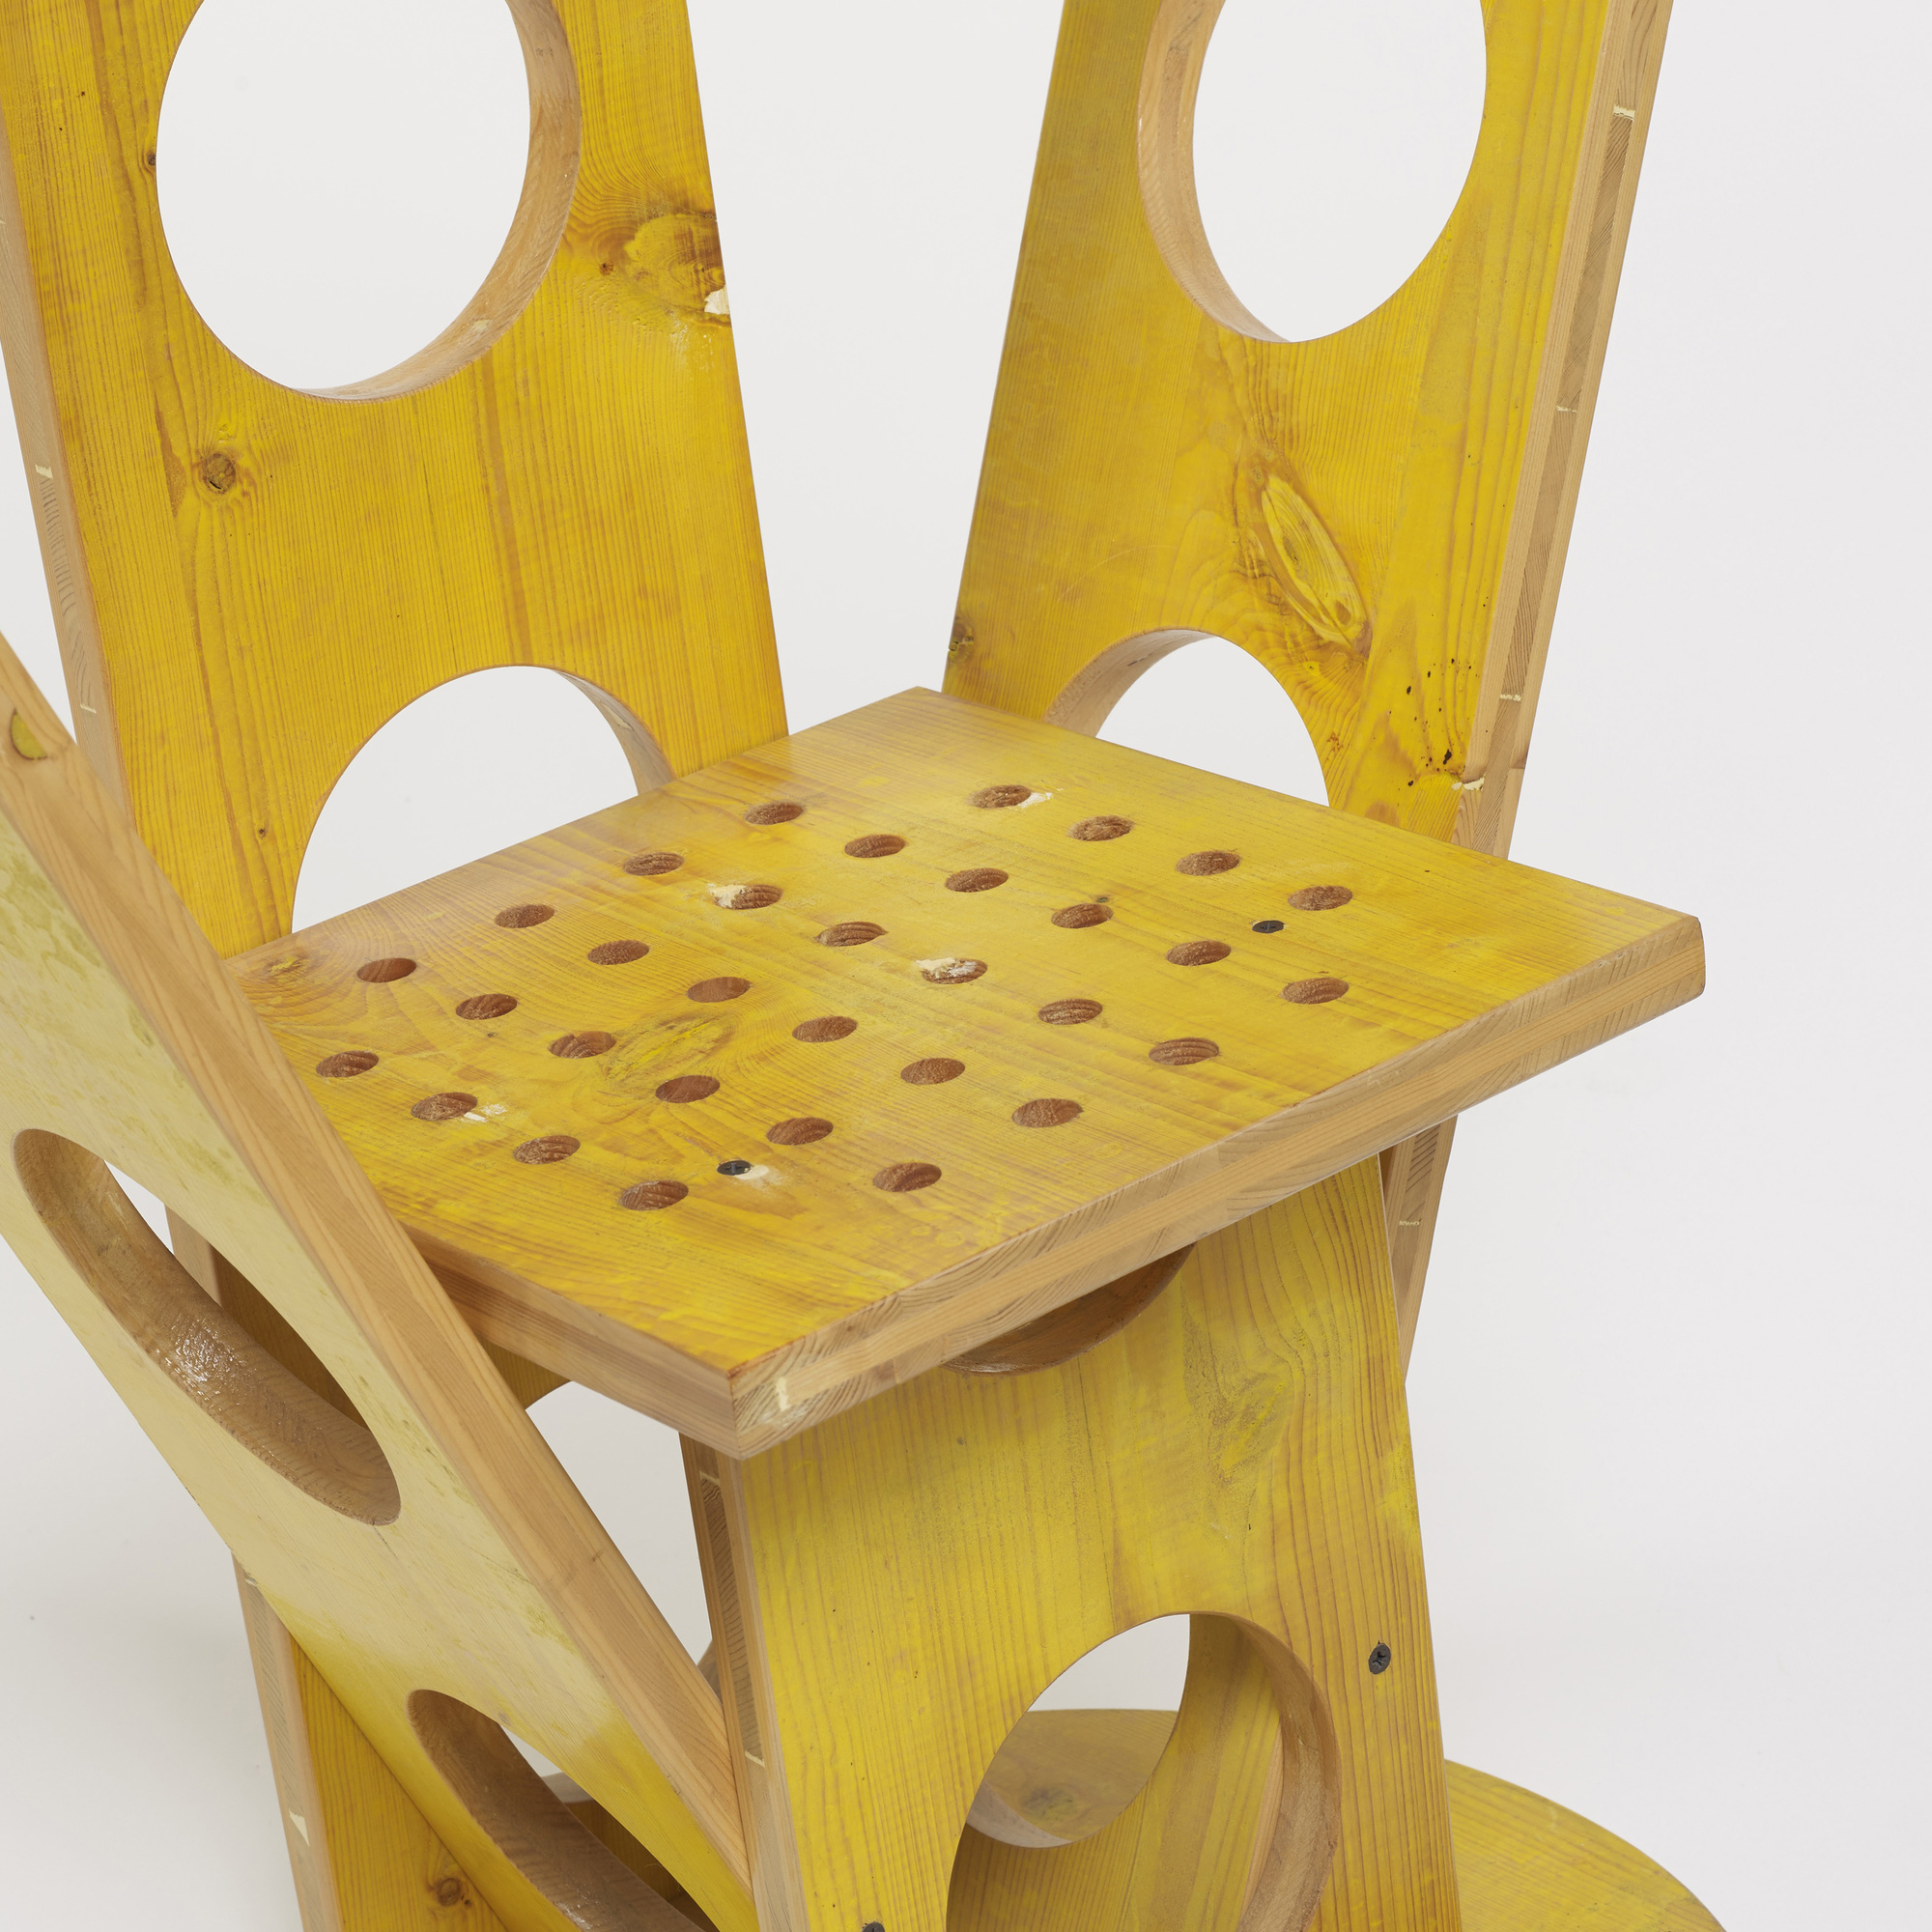 505: Cesare Leonardi / prototype chair (2 of 3)